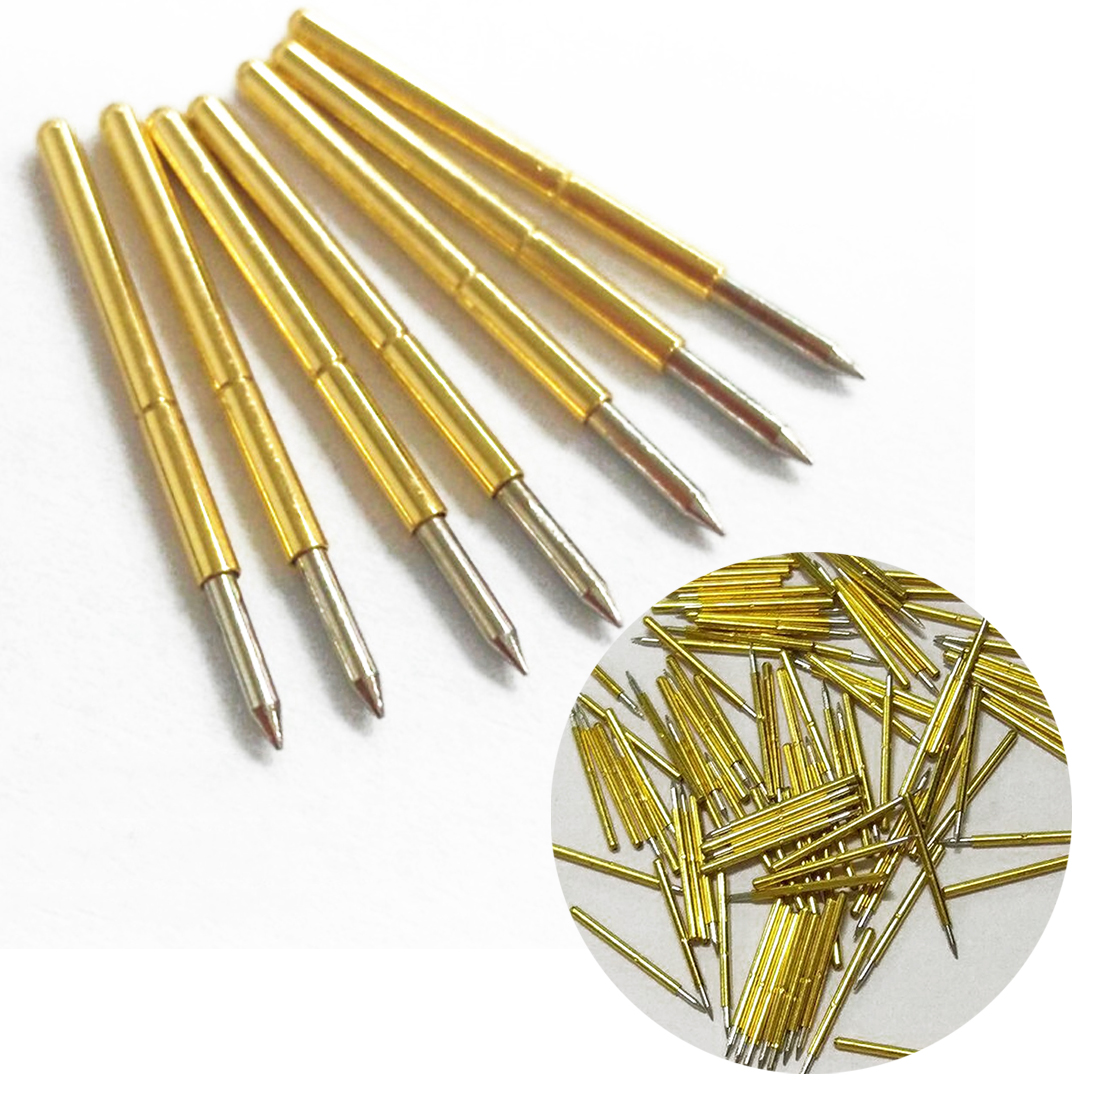 цена на Hot 100pcs Spring Test Probe Pogo Pin P75-B1 Dia 1.02mm 100g Cusp Spear Gold Plated For Test Tools